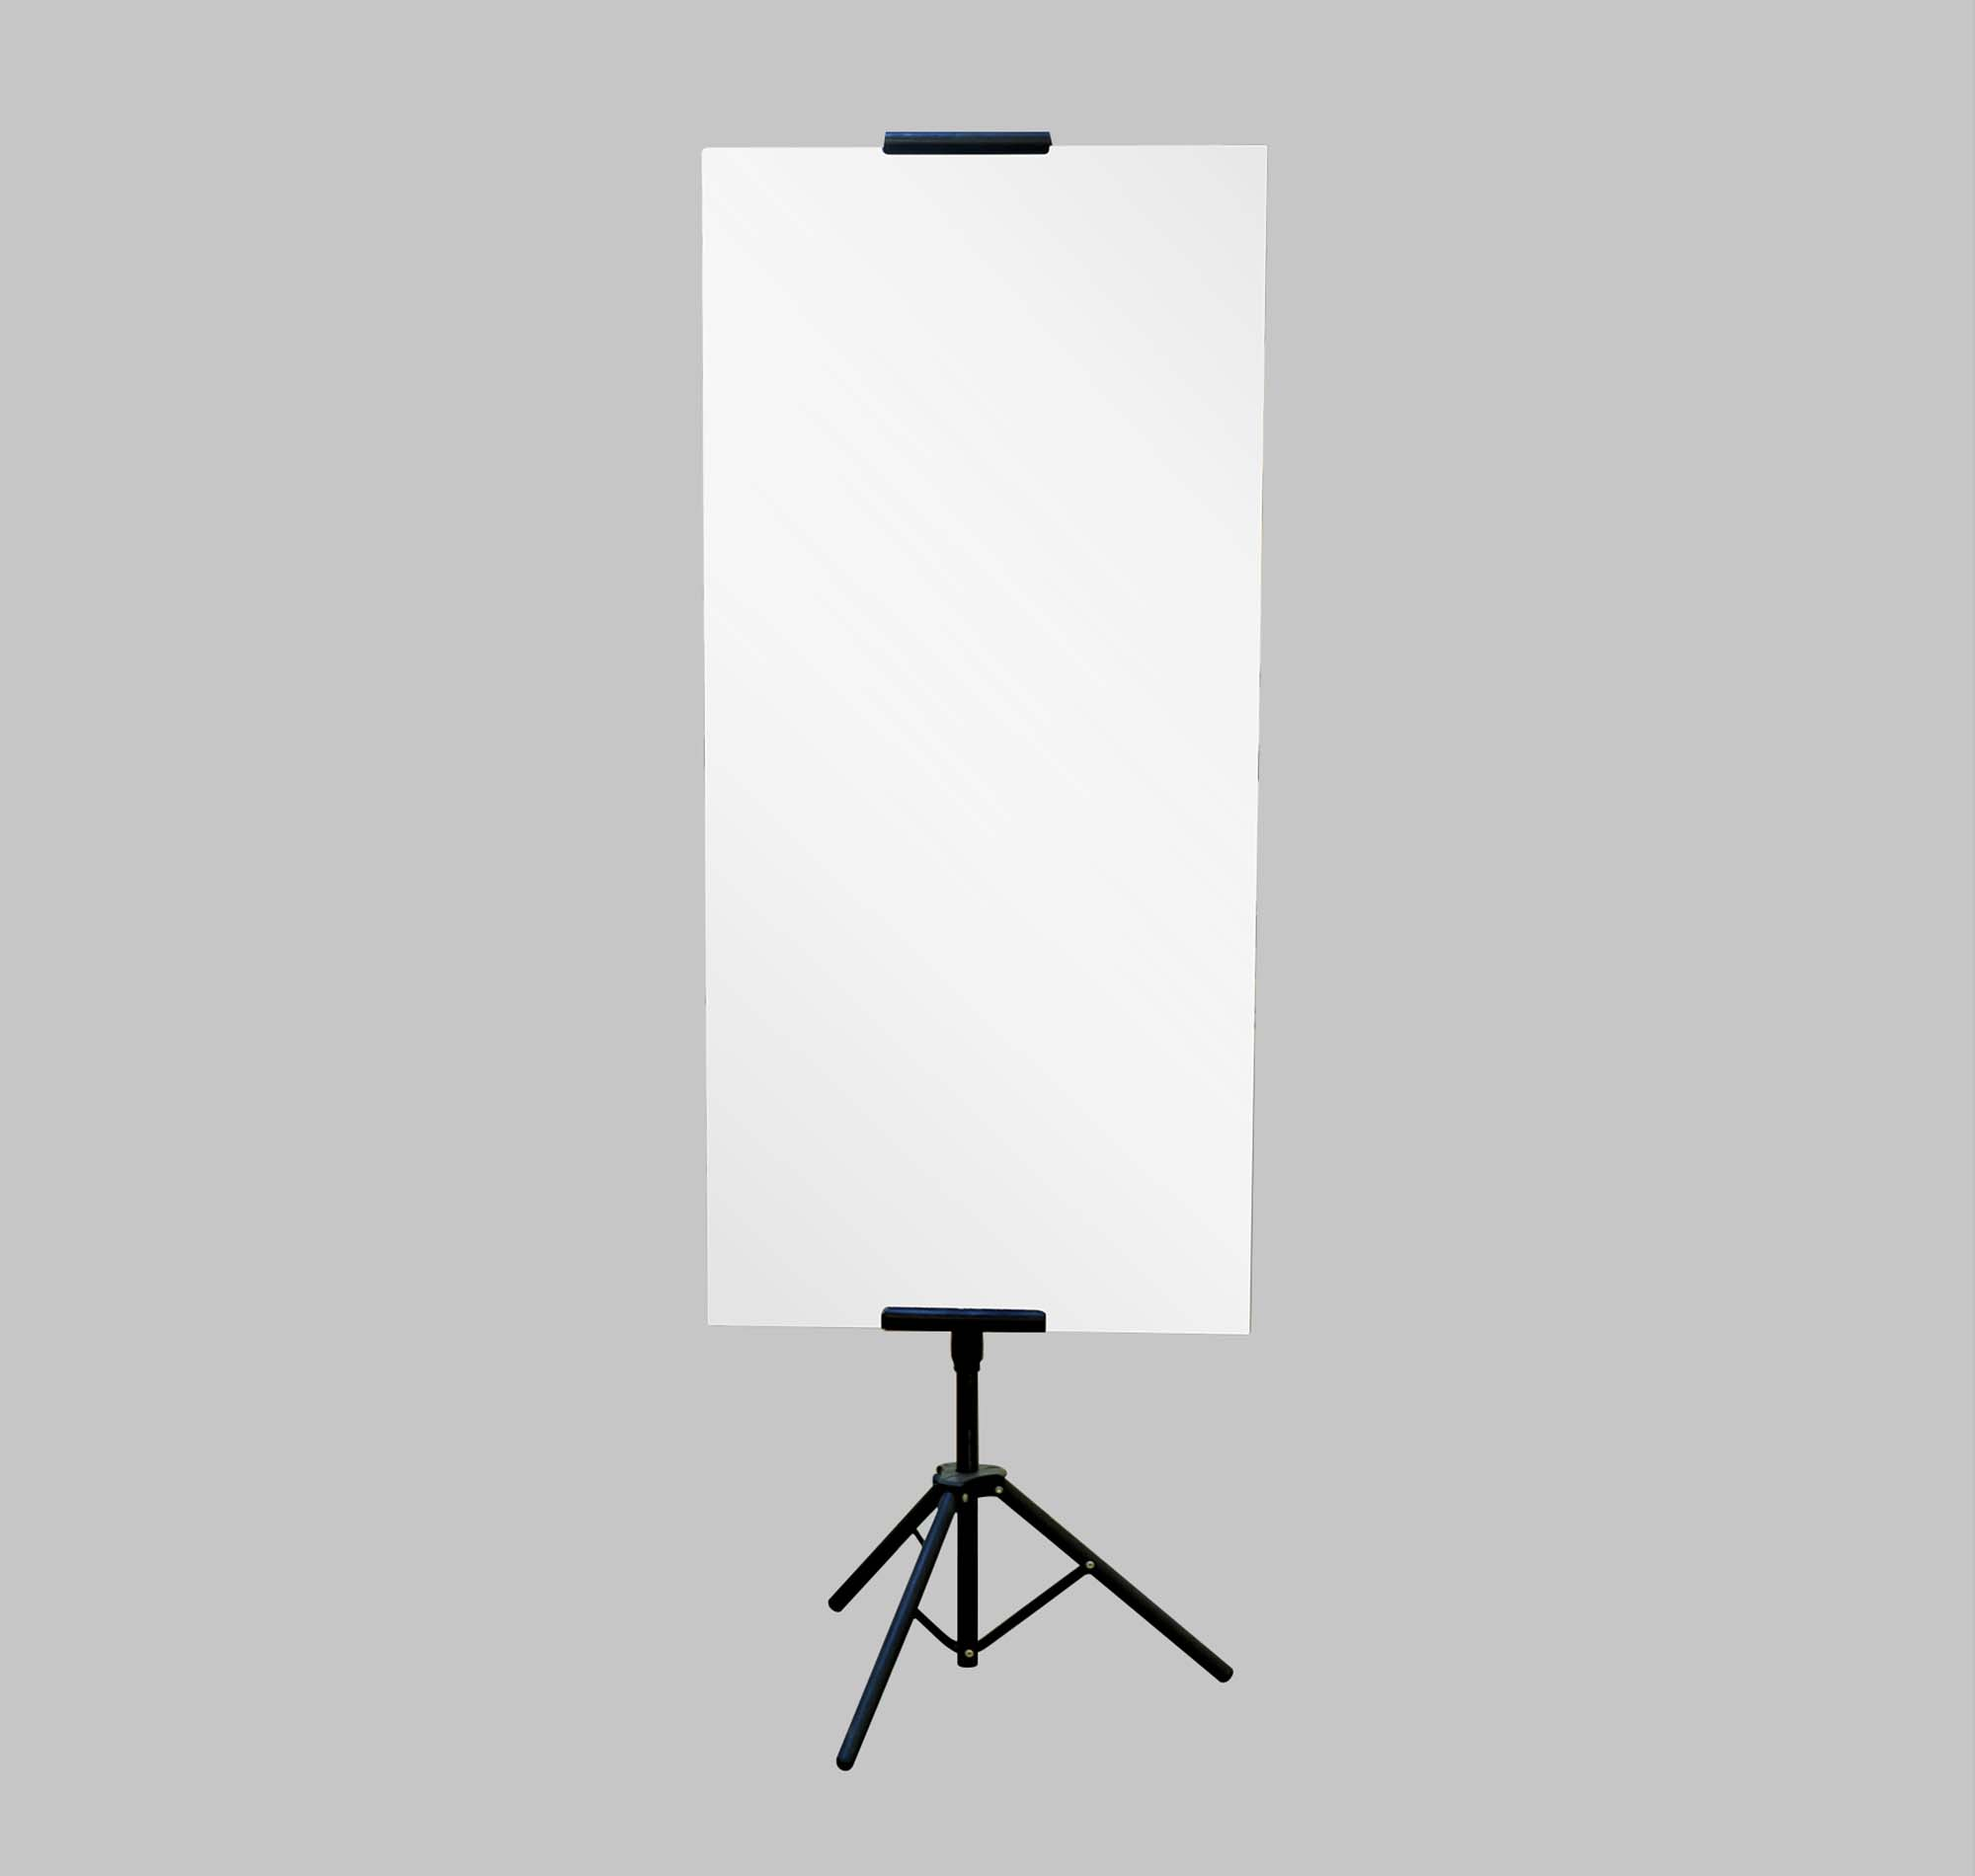 Tripod Stand Banner Mockup 2